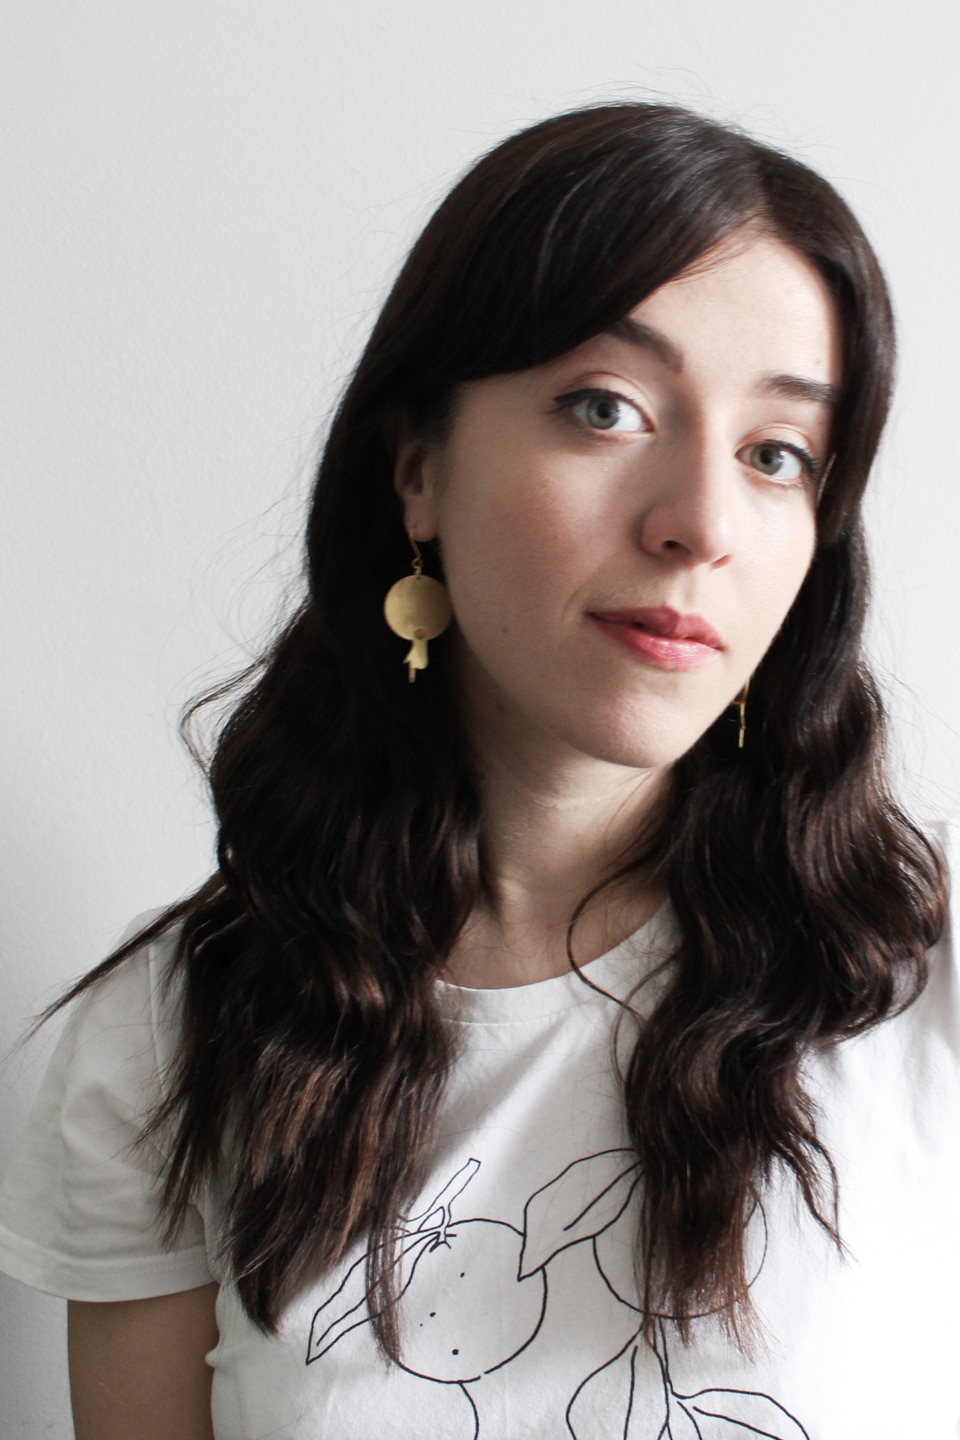 Besma wears Pivot Jewellery earrings and t-shirt from Nude Ethics